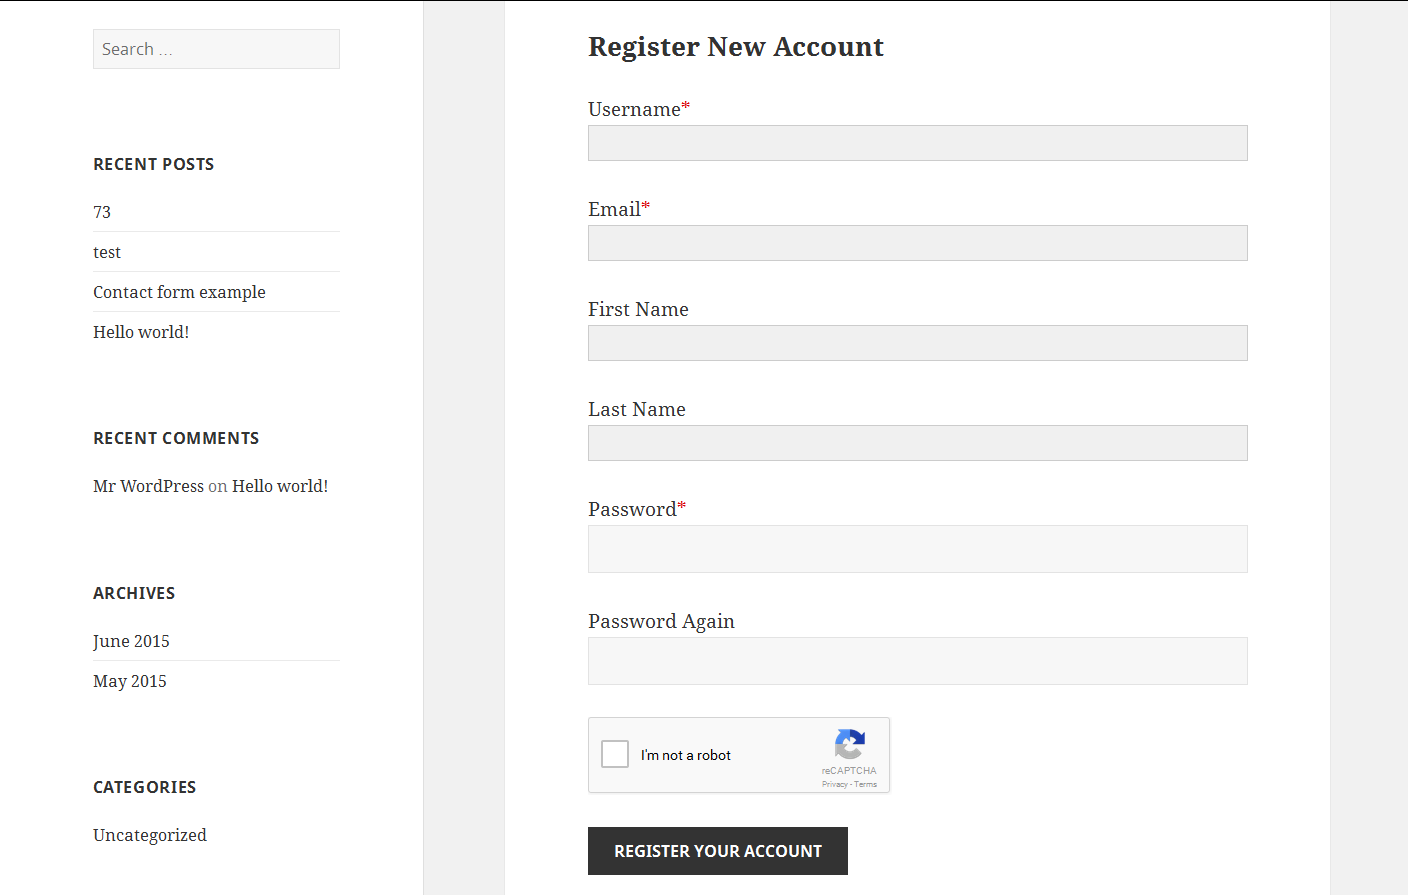 custom-registration-and-login-forms-with-new-recaptcha screenshot 3